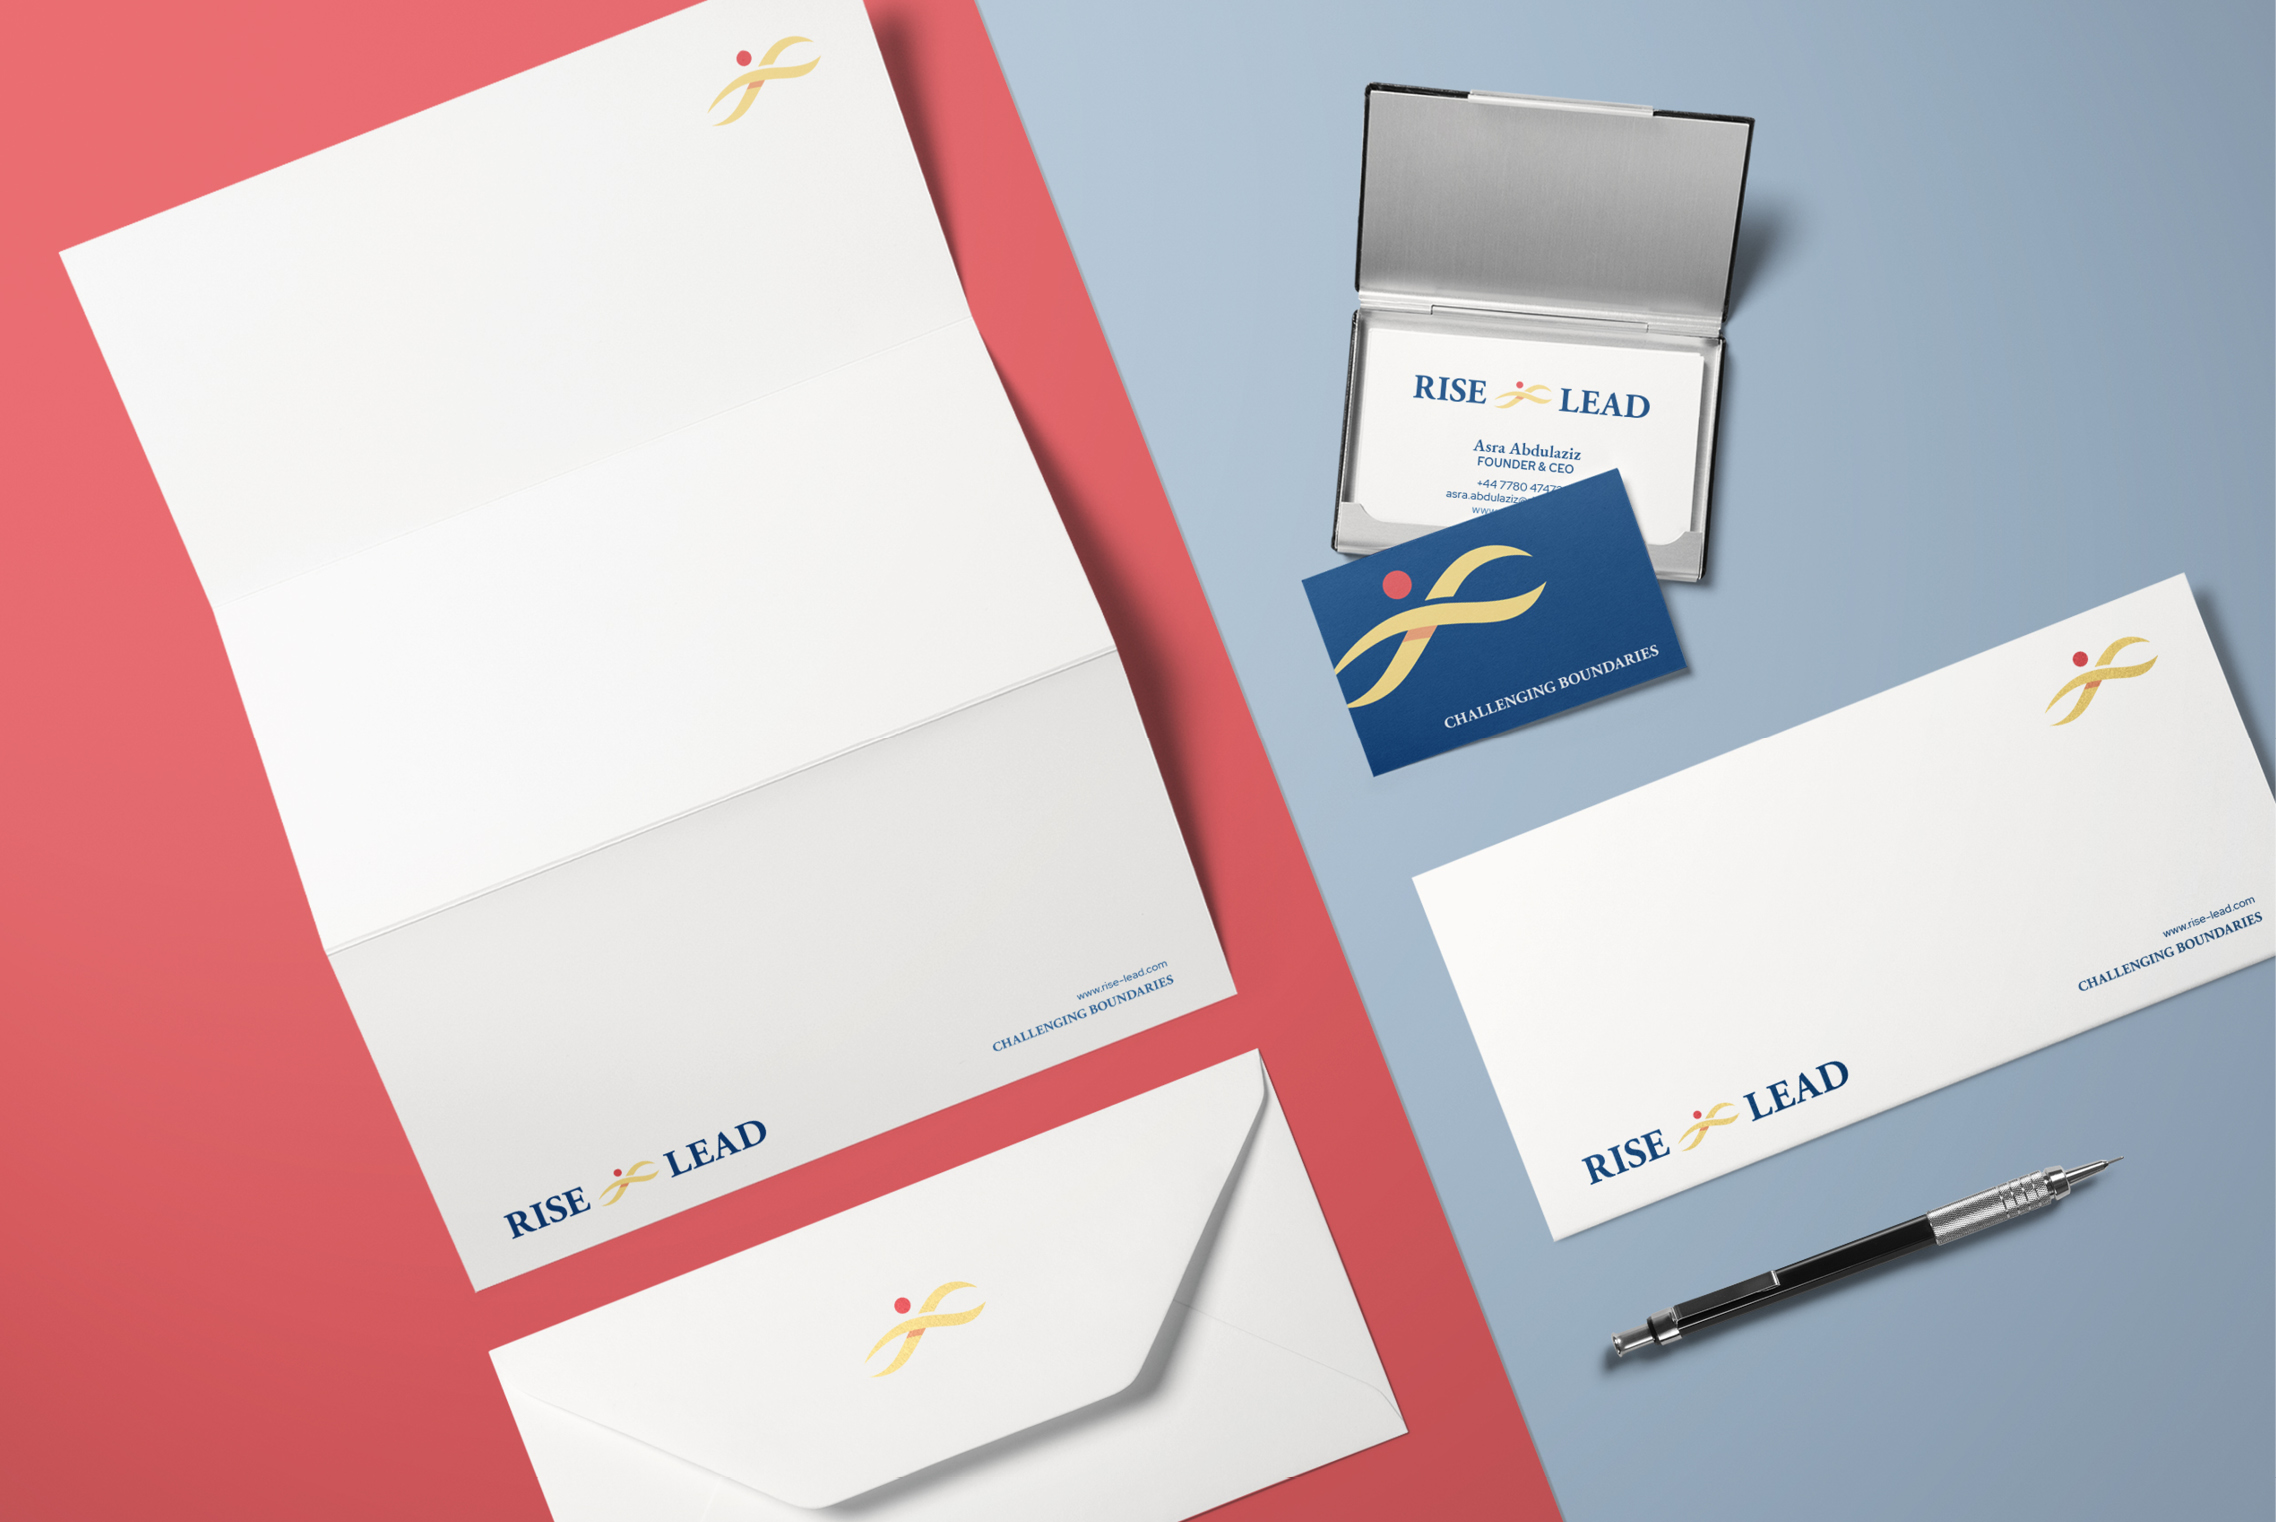 Rise & Lead stationery